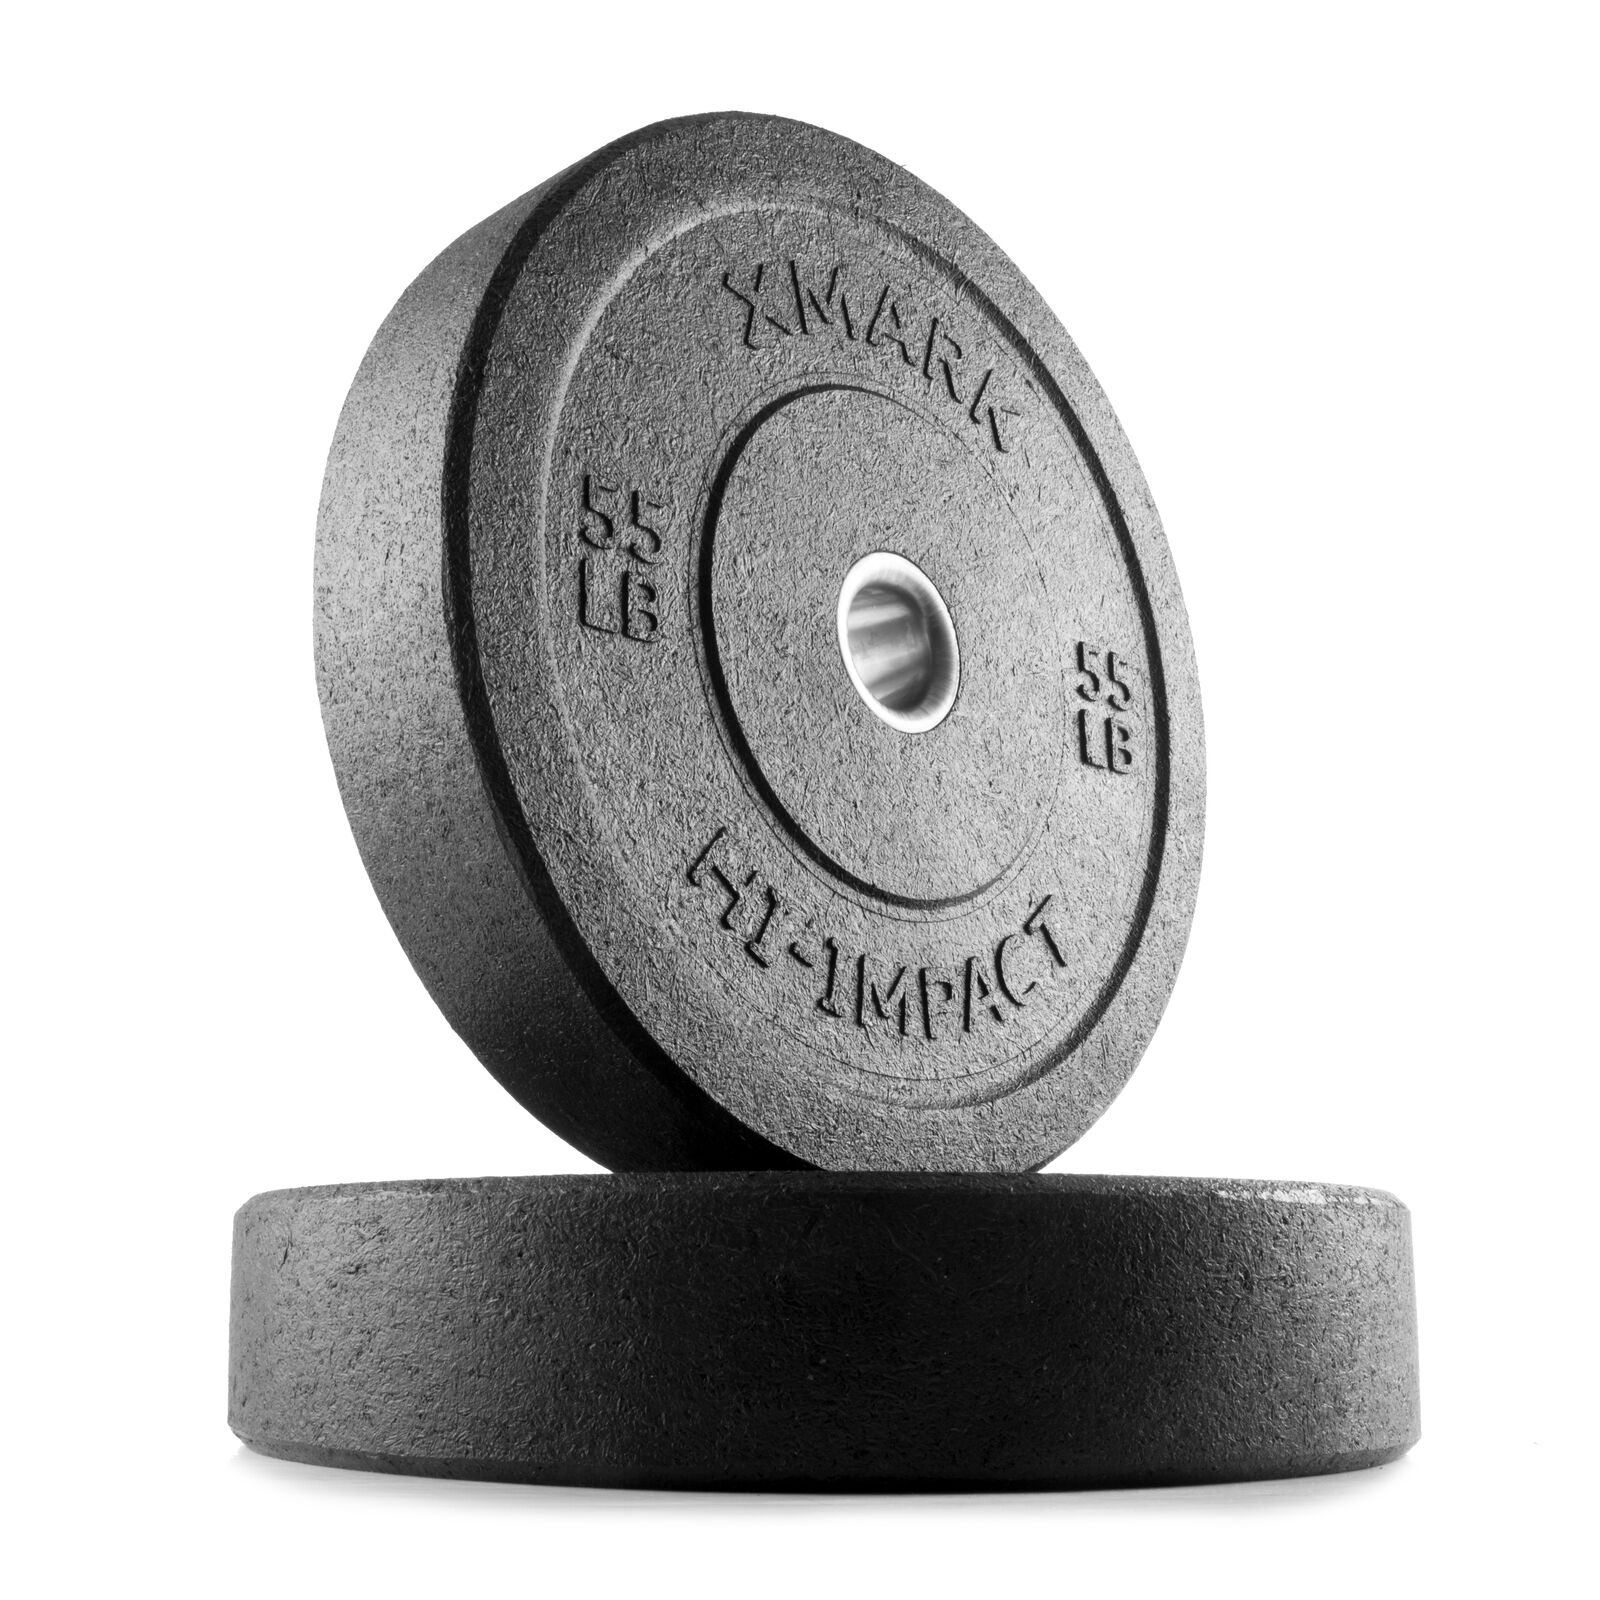 XMark HI-IMPACT 55 lb. Pair  of Olympic Bumper Plate Weights XM-3391-55-P  luxury brand